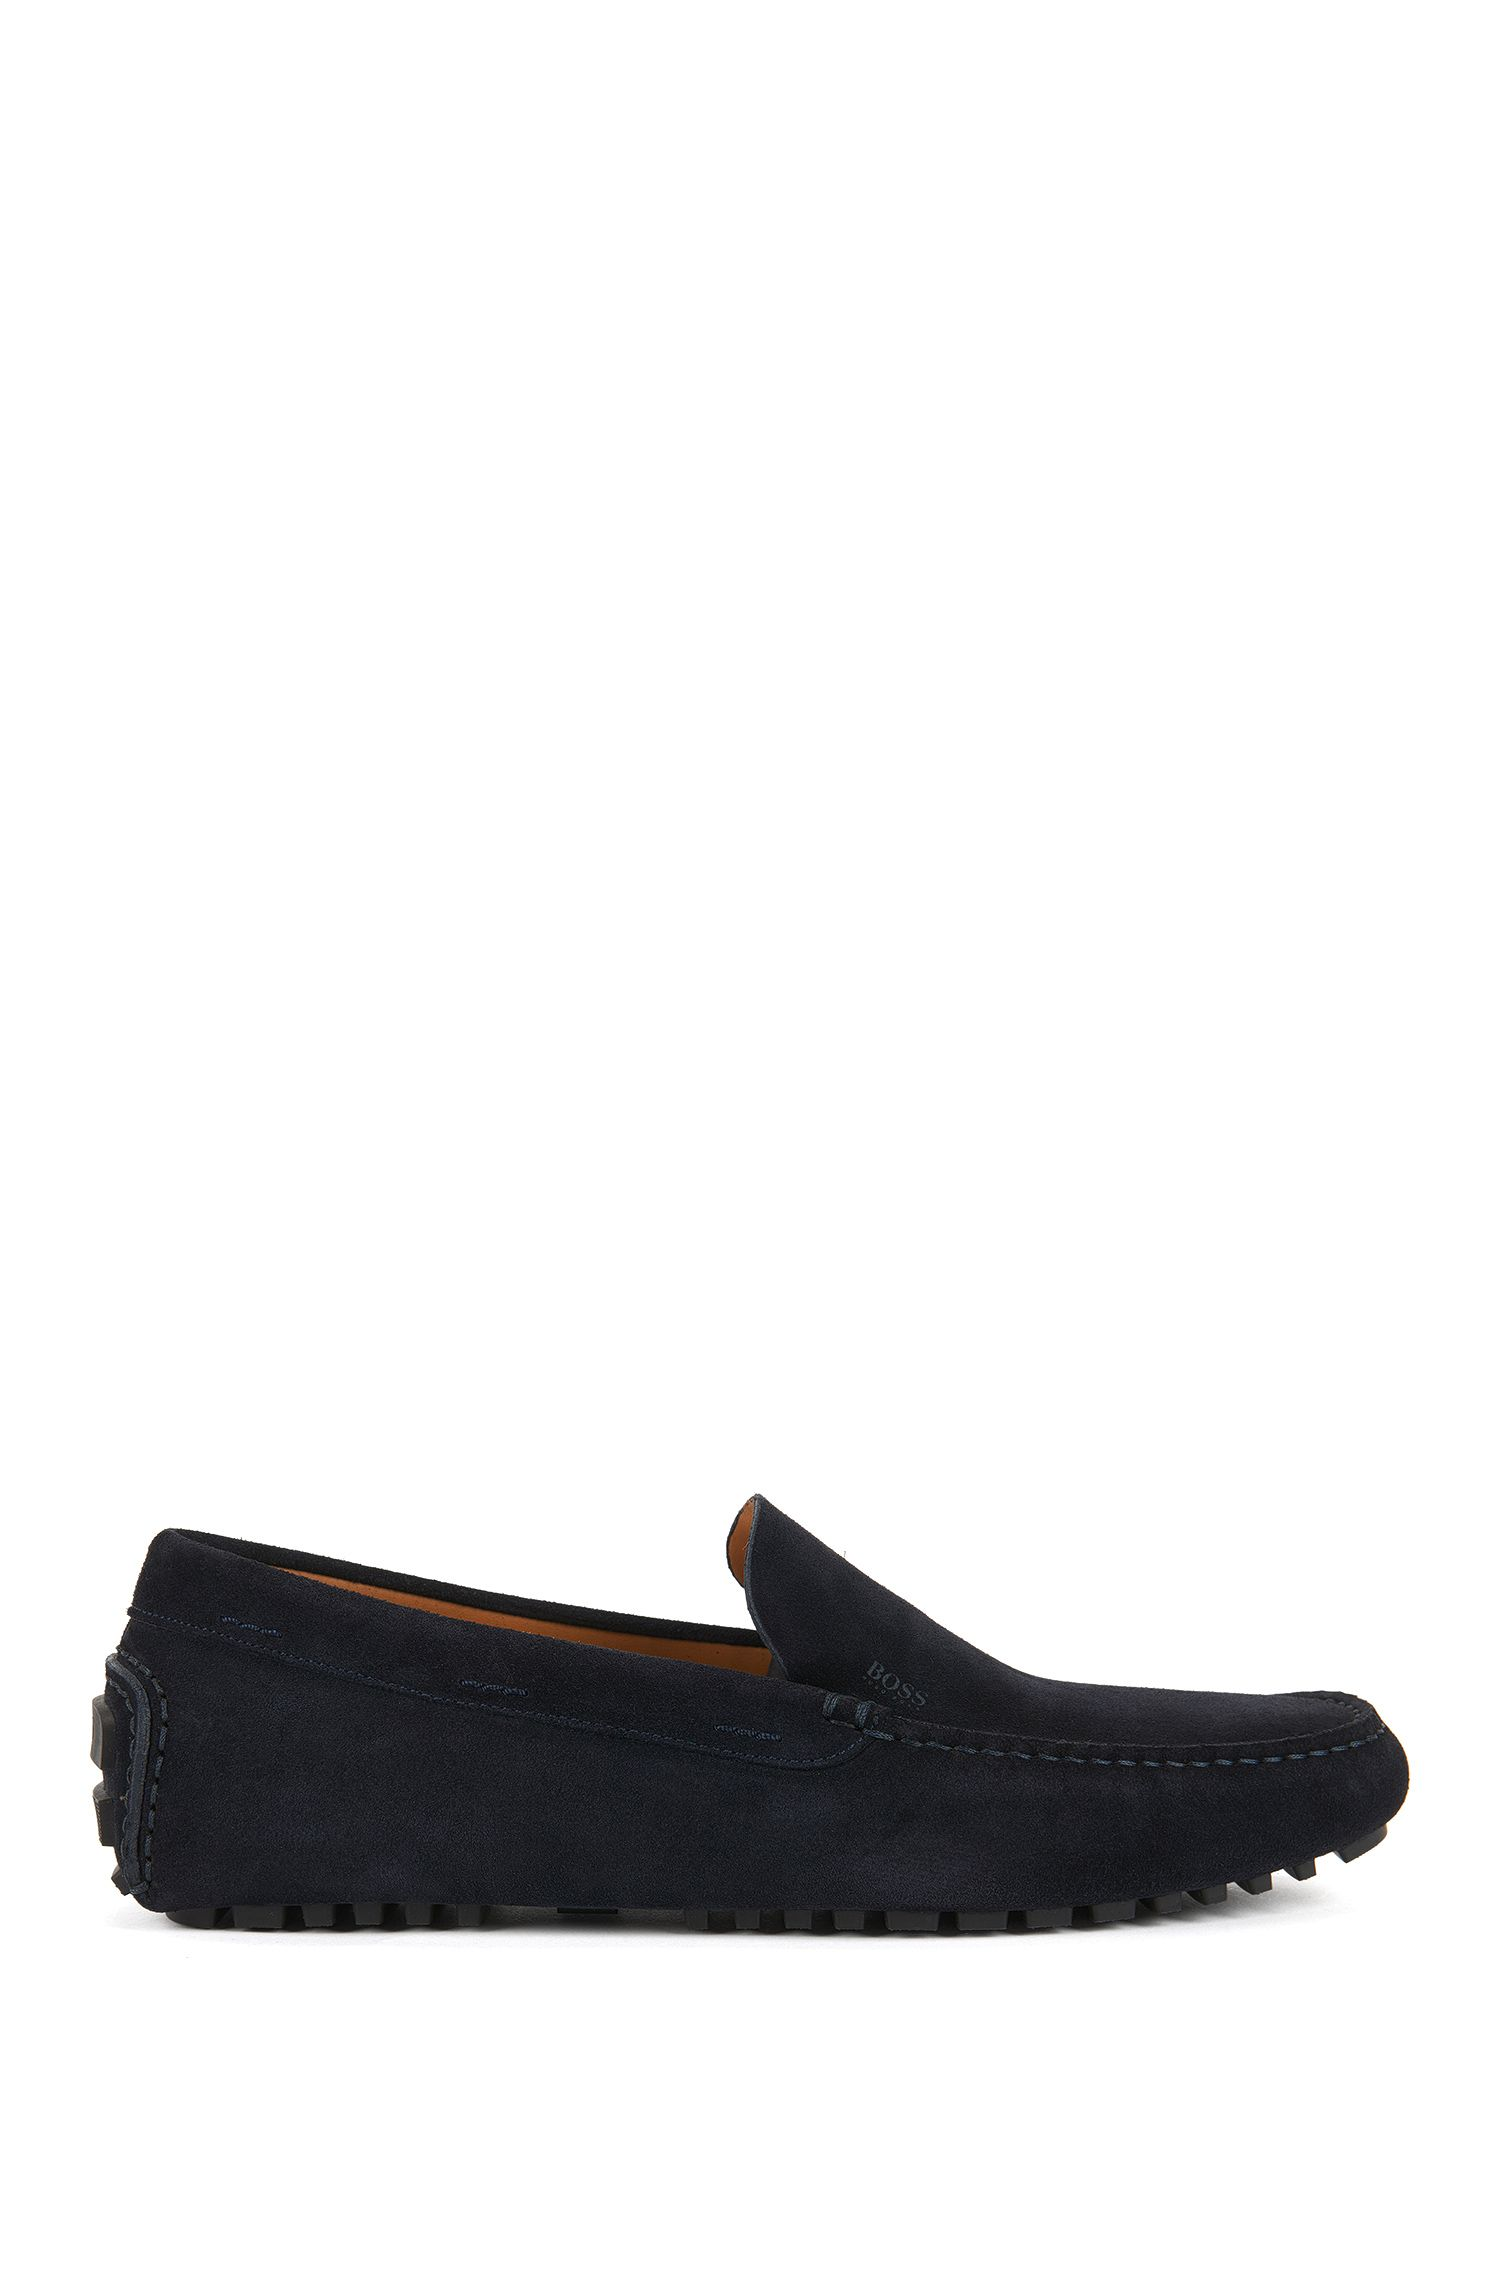 Suede moccasins with injected-rubber soles